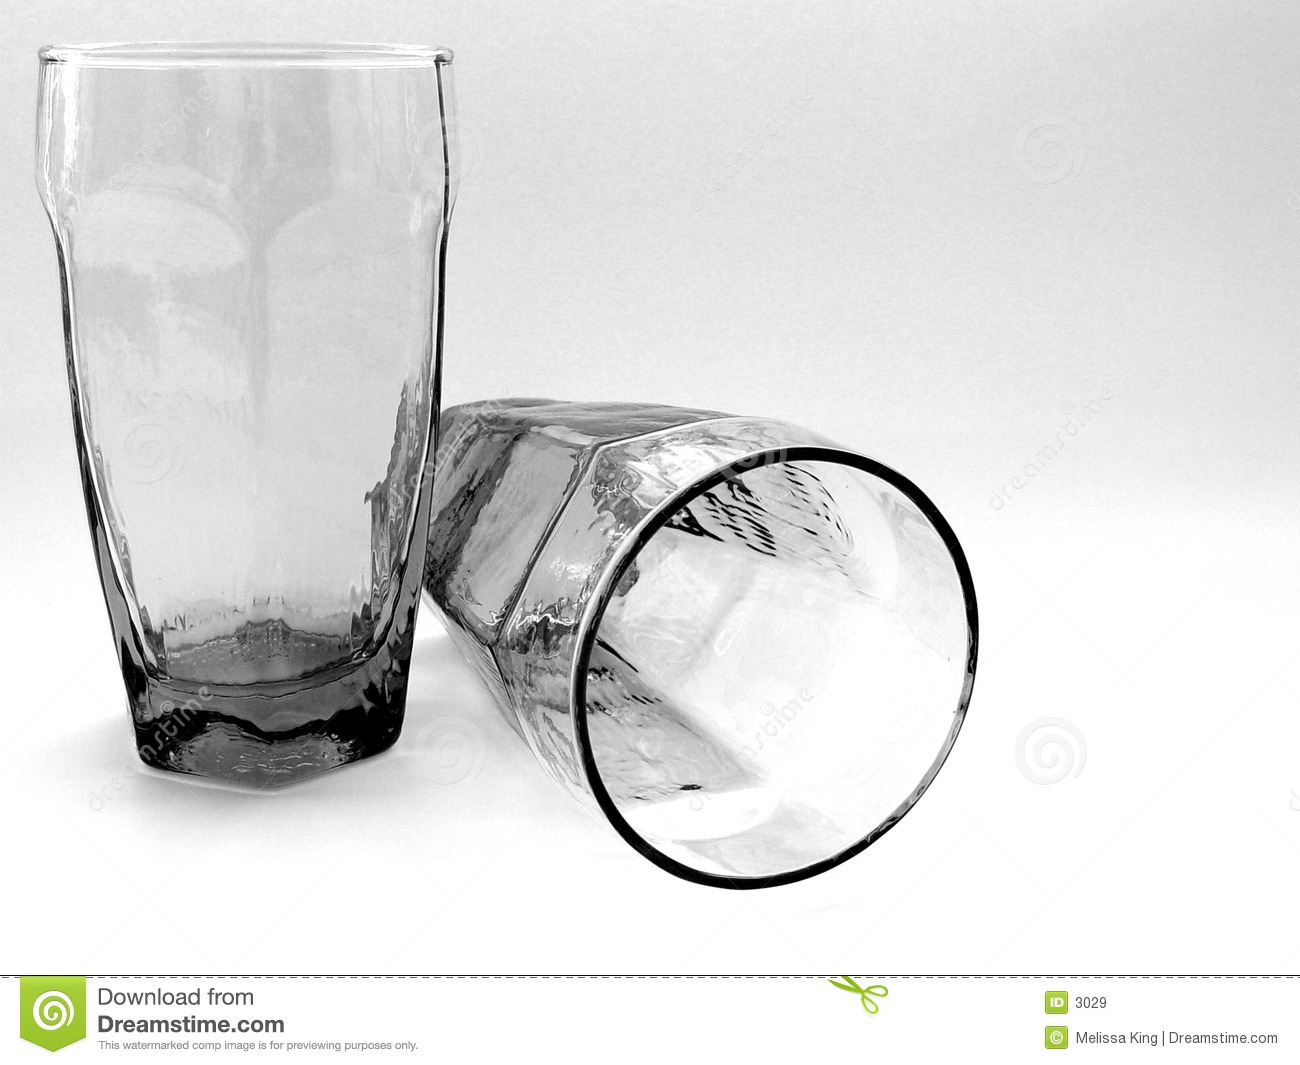 Two Glasses Together